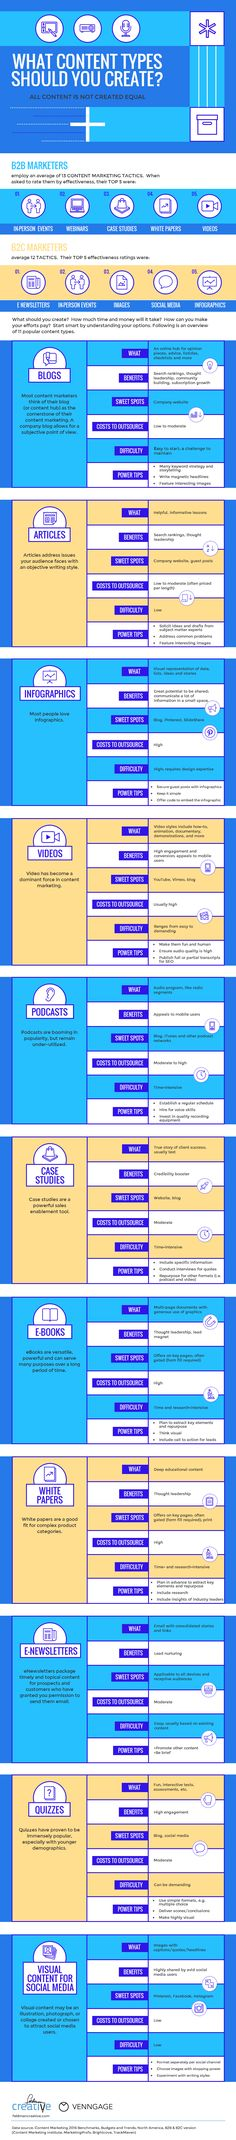 Types of Branded Content: A Guide to 11 Popular Formats [Infographic]